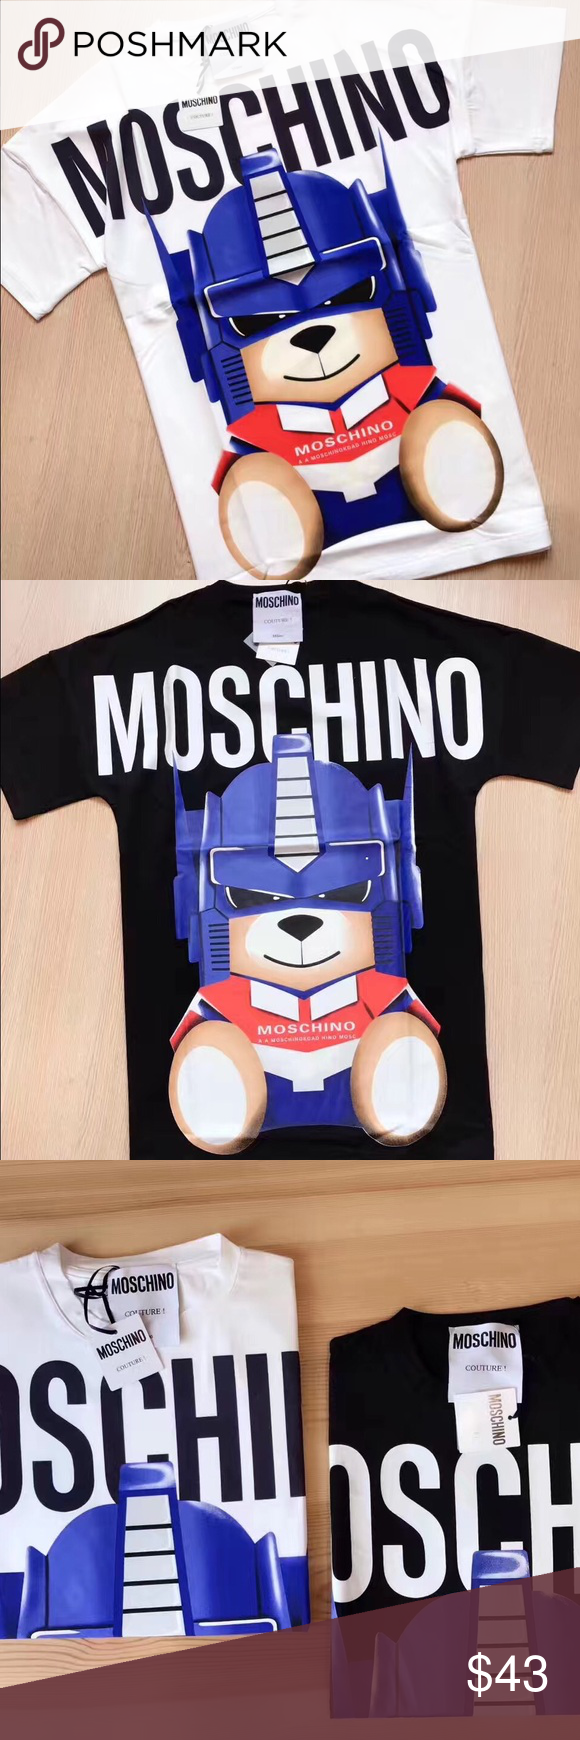 MOSCHINO Teddy Robot Tee Order on Poshmark is now available!   Women's sizes are available only (S-L).  Very fitted or worn oversized.  For sizing inquiry please email dandyshop17@gmail.com Moschino Tops Tees - Short Sleeve